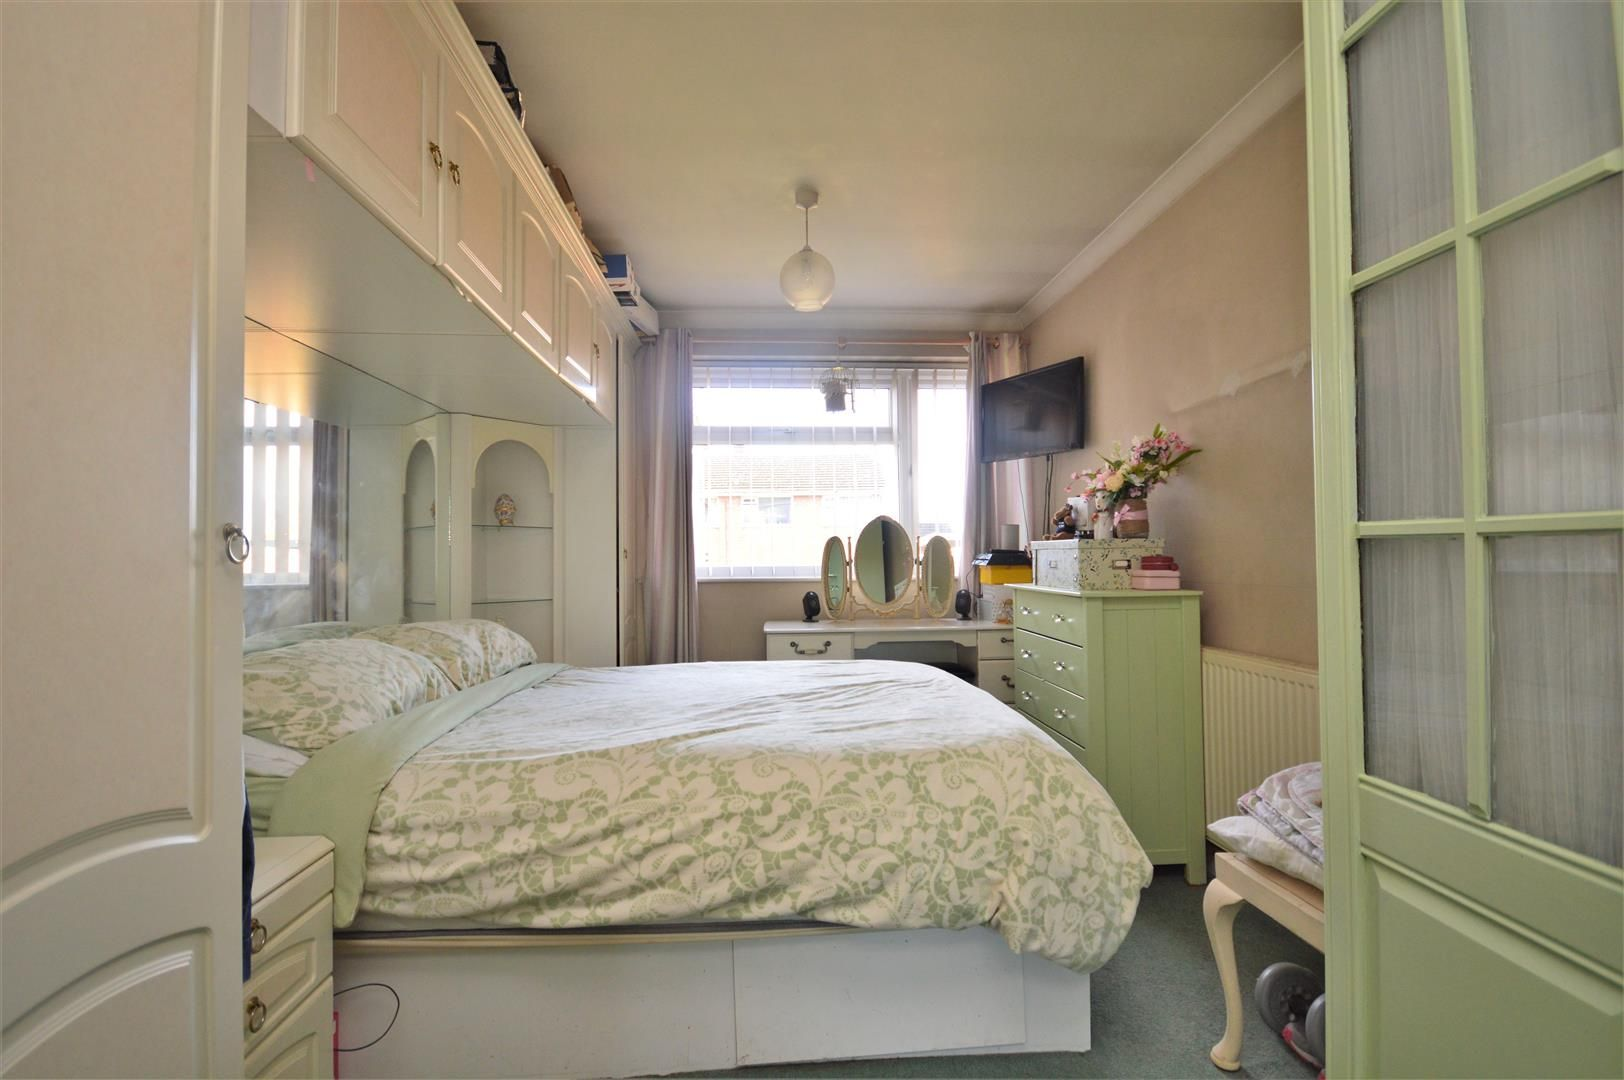 2 bed apartment for sale in Hereford  - Property Image 7